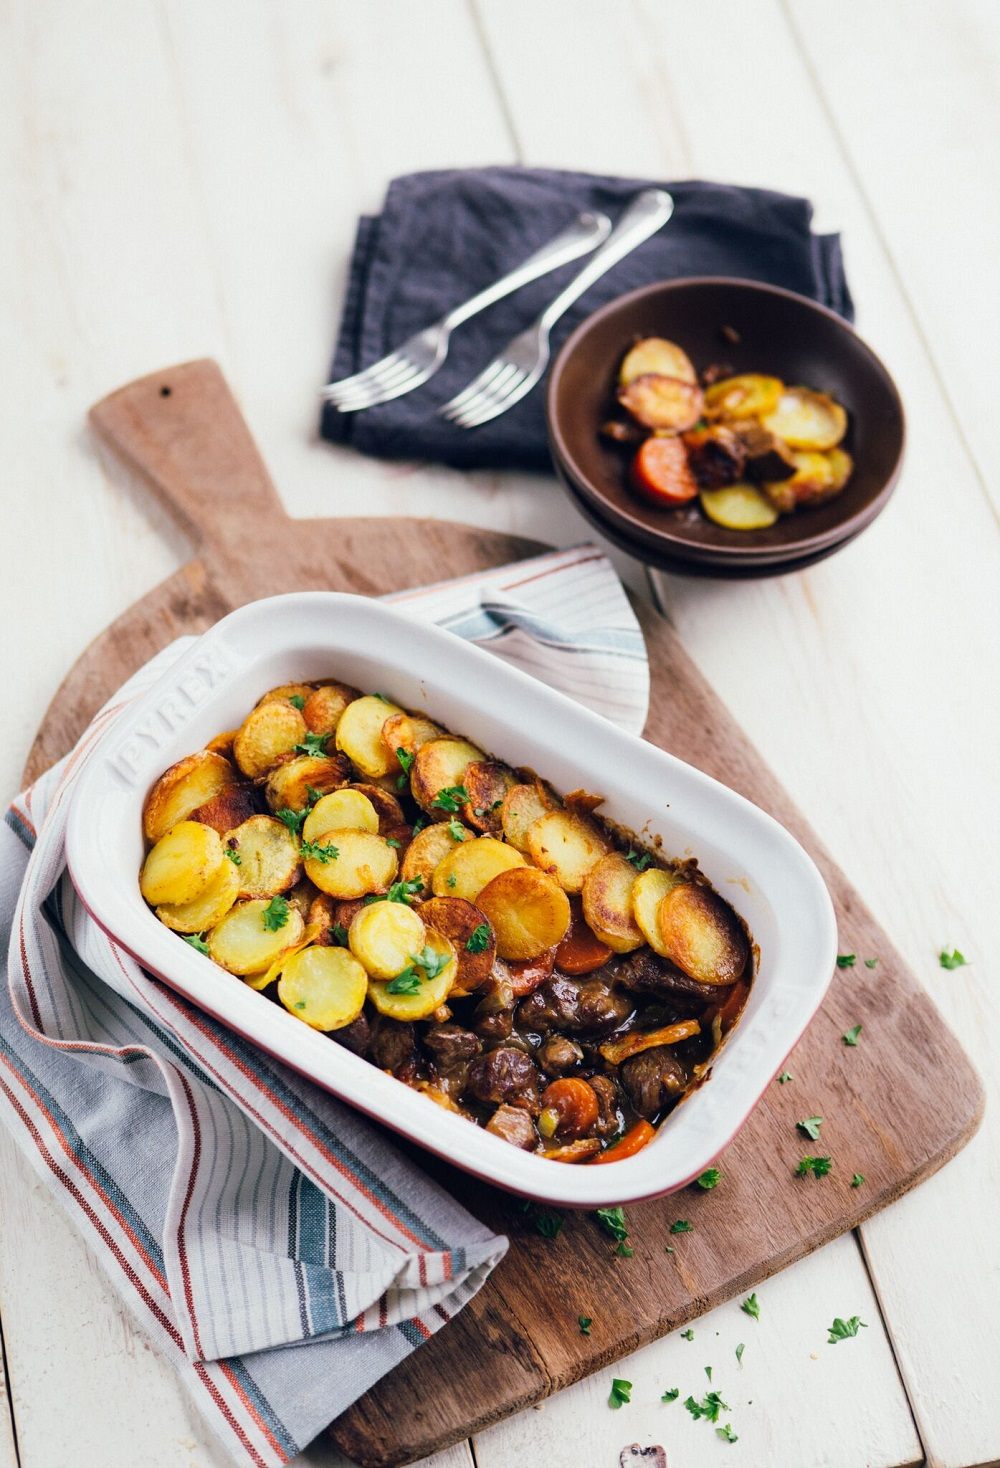 Fancy Making A Lovely Leftovers Lamb Hotpot?